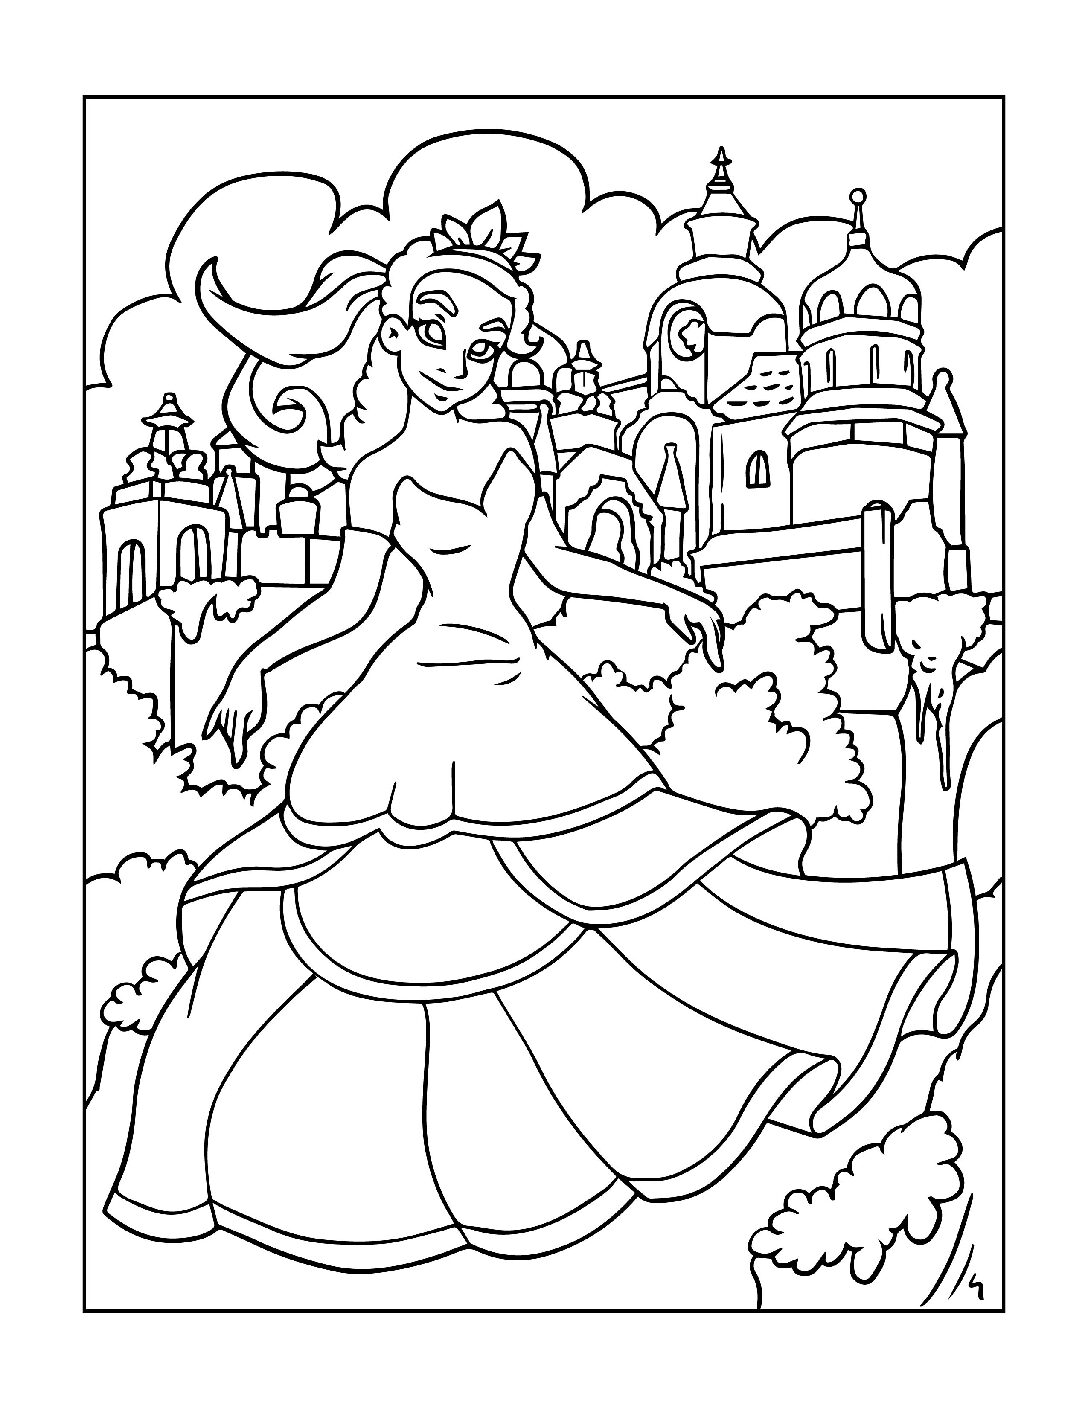 Coloring-Pages-Princess-1-01-pdf Free Printable Princesses Colouring Pages